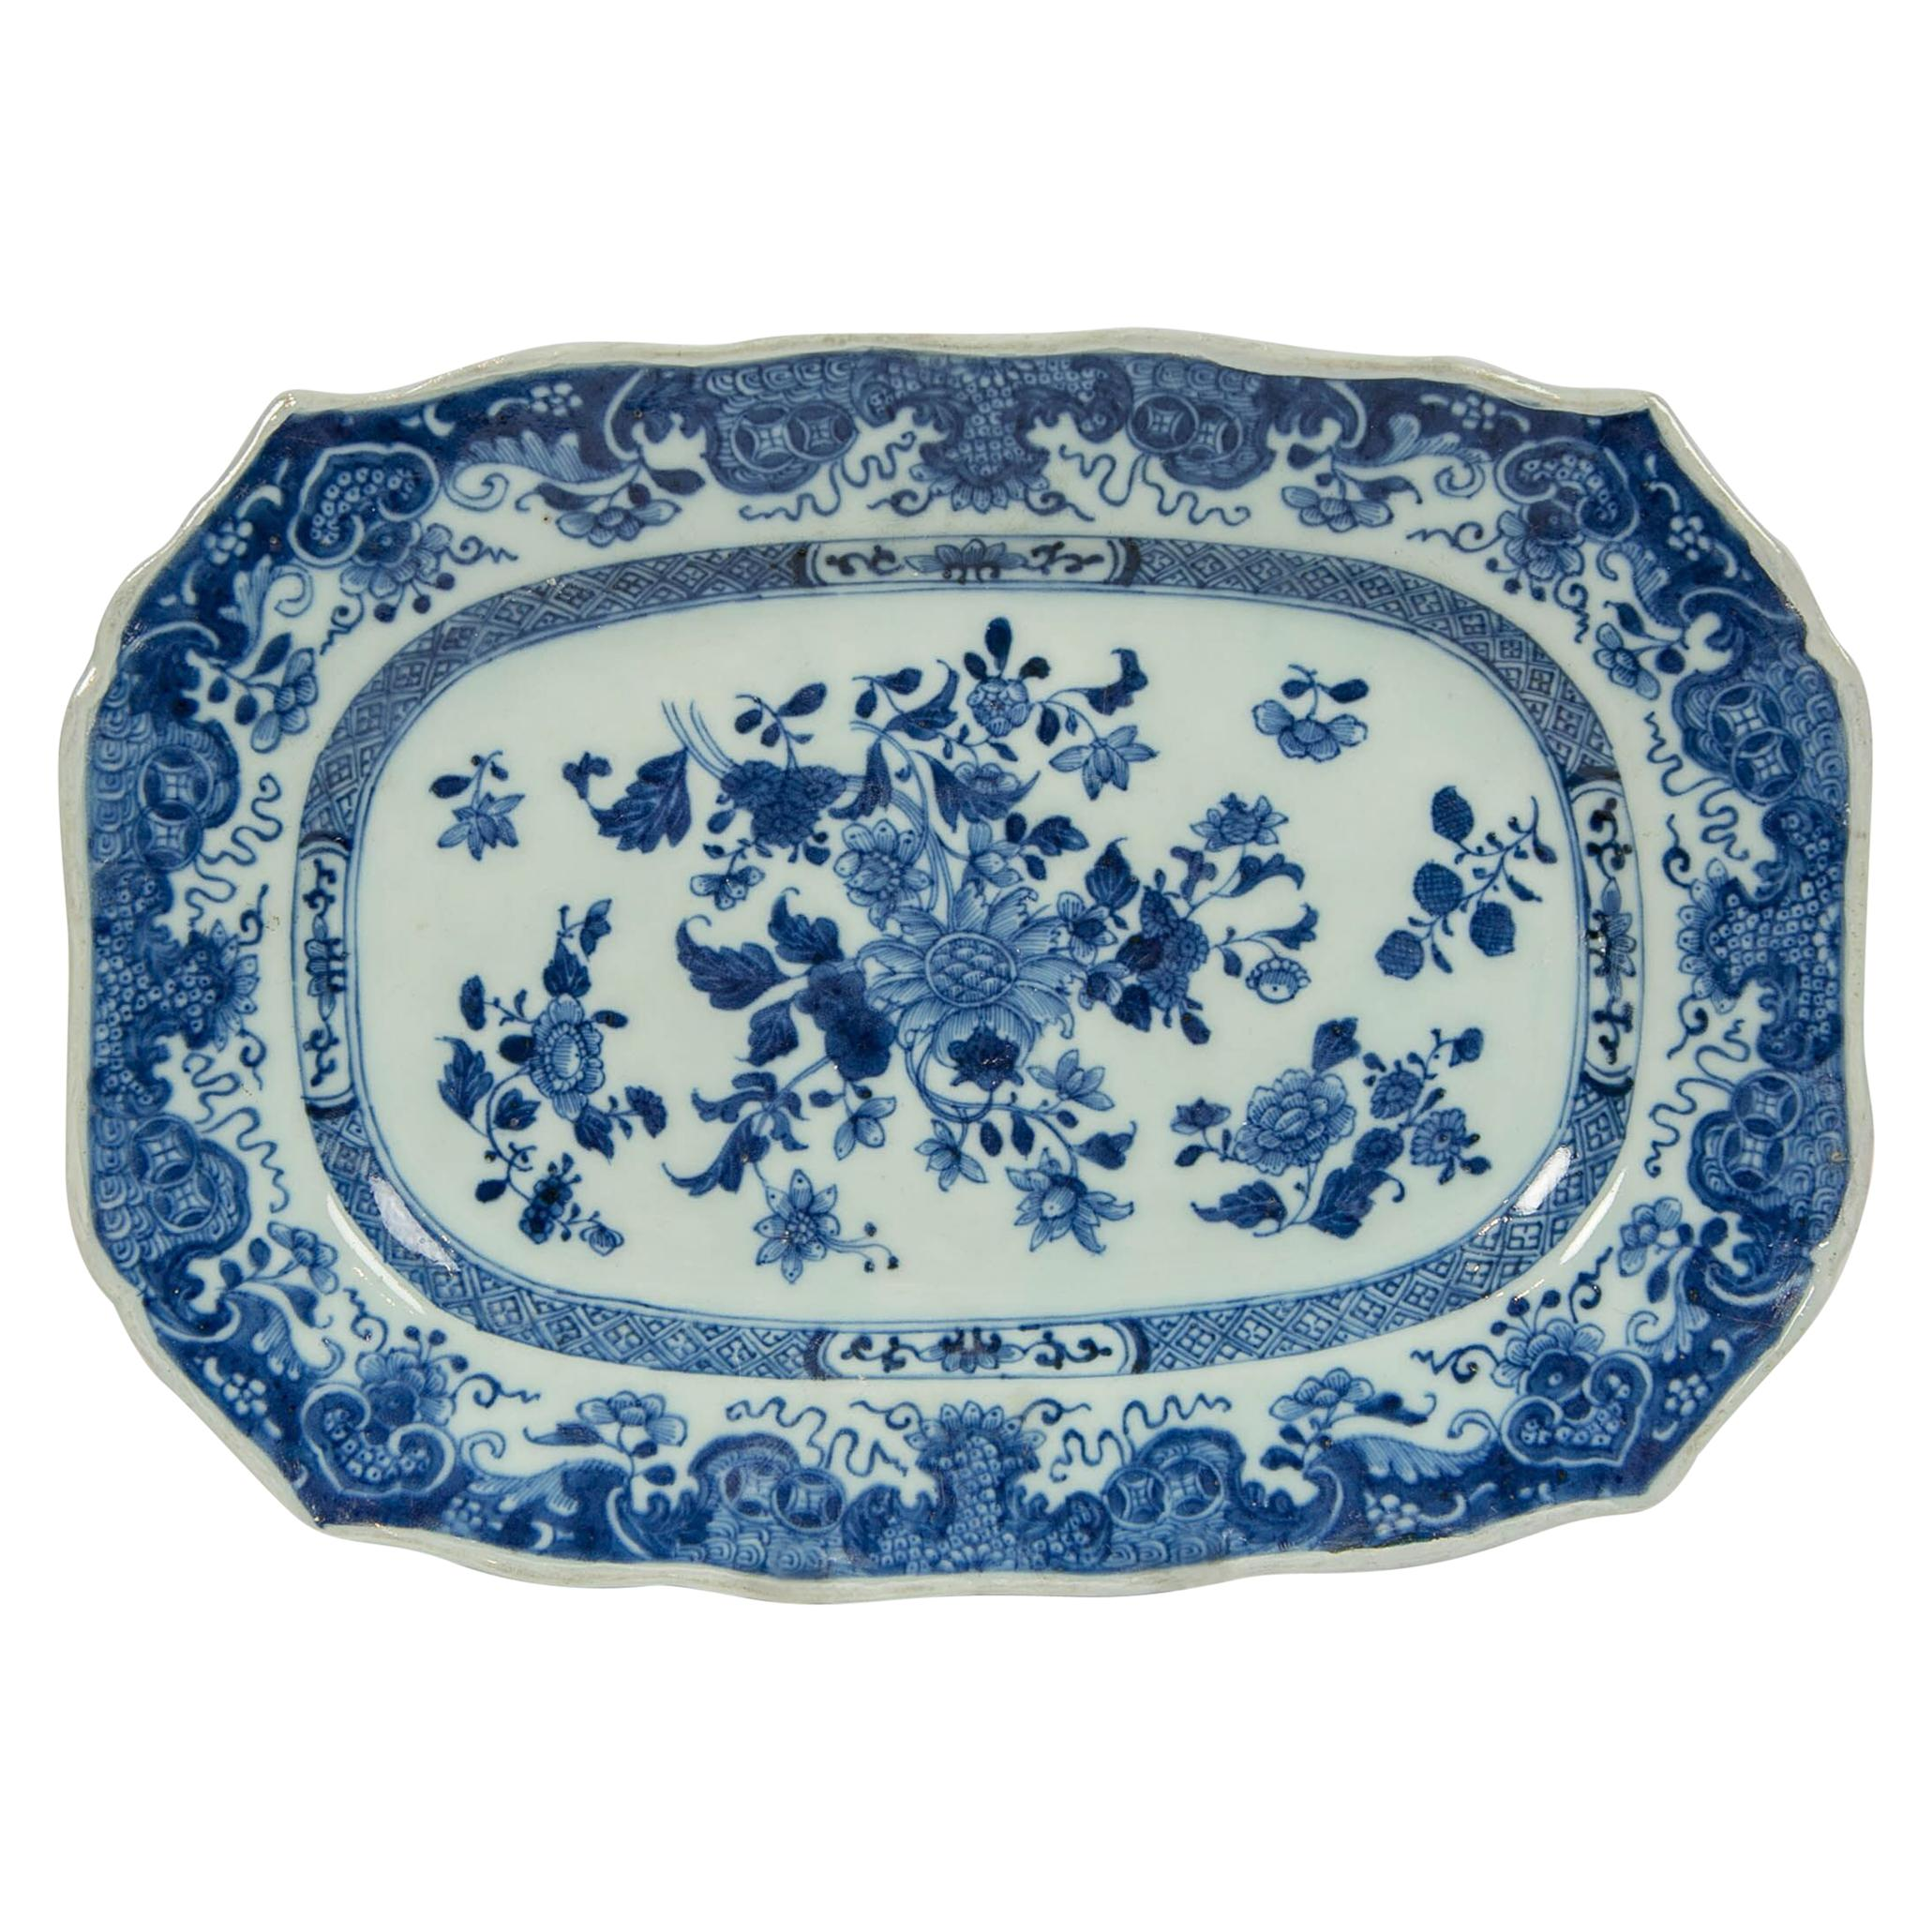 Chinese Blue and White Small Platter Made circa 1770 during the Qianlong Period